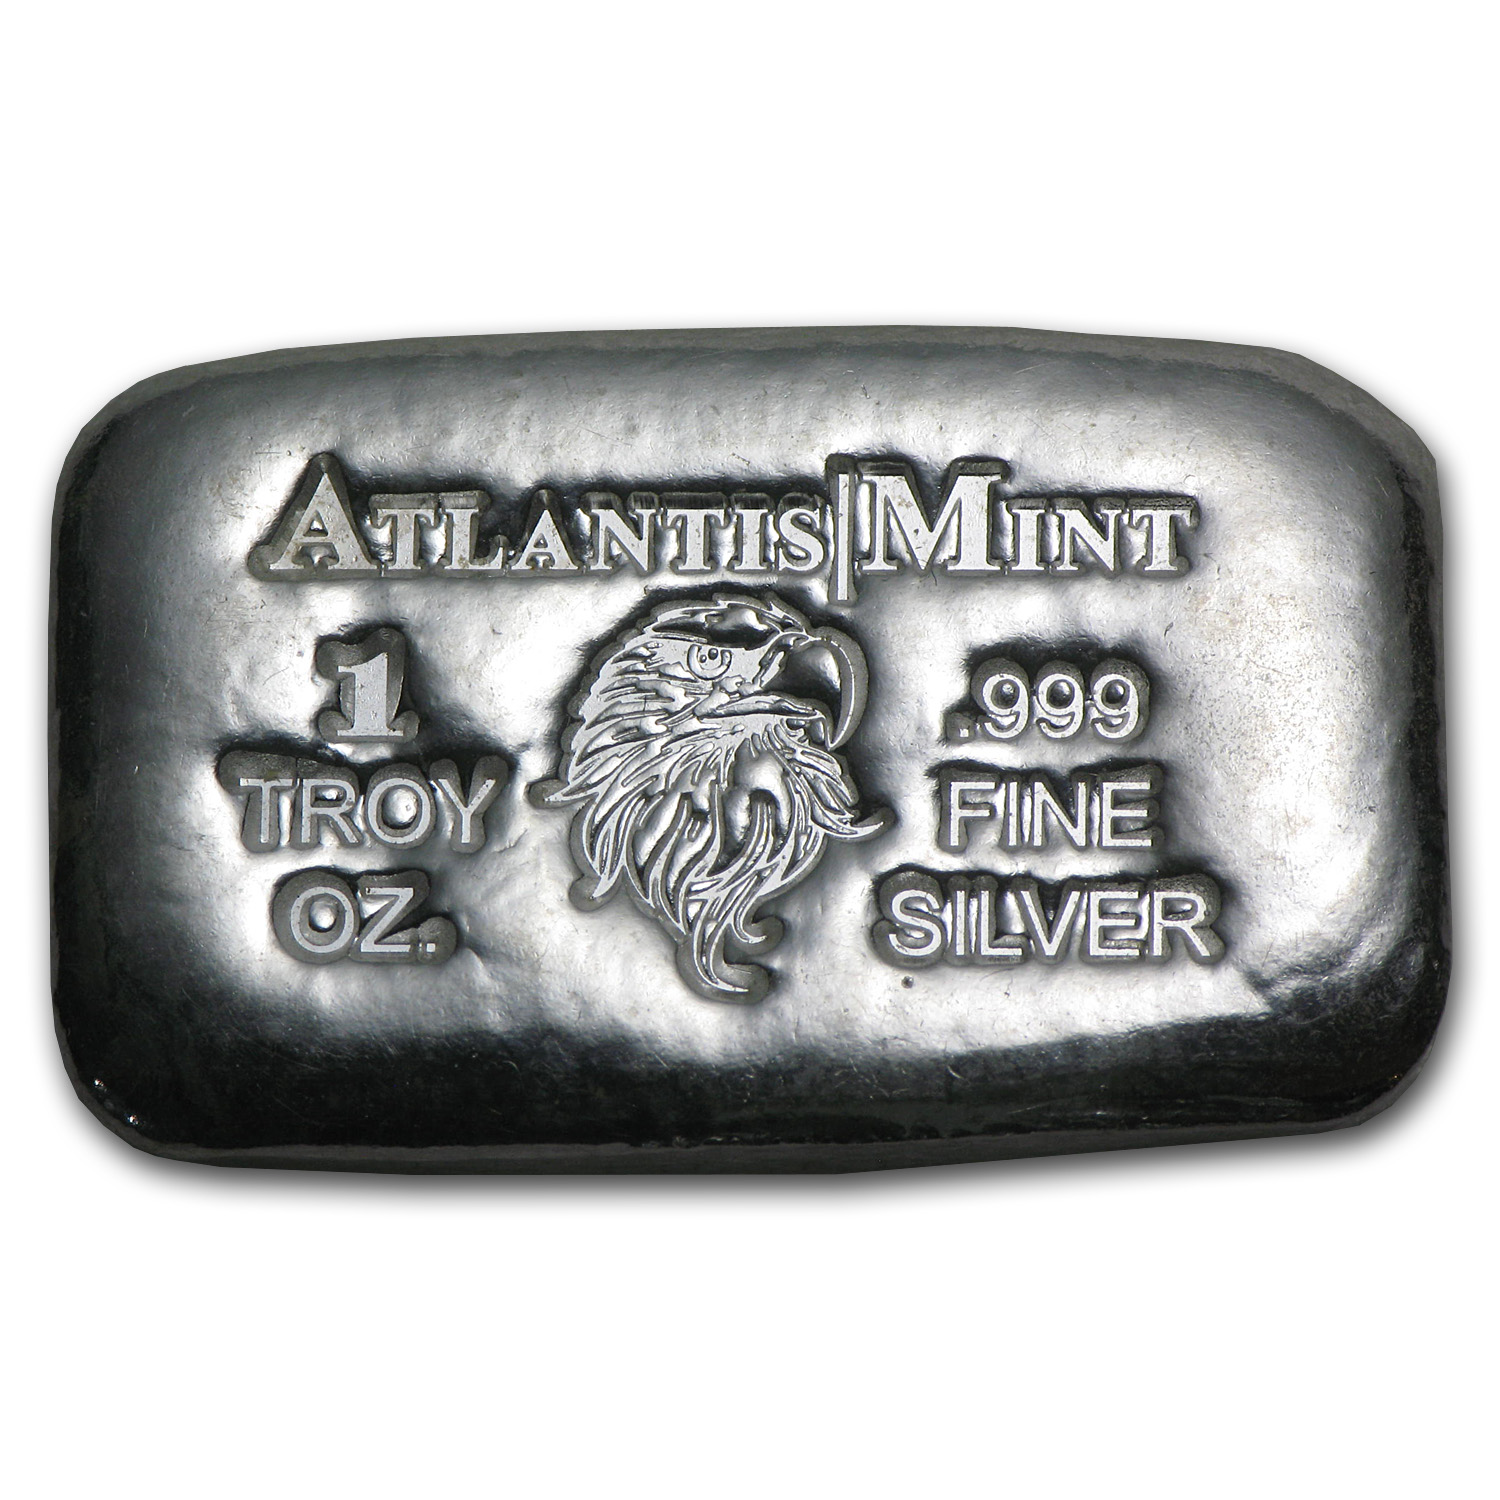 1 oz Silver Bars - Atlantis Mint (Eagle)